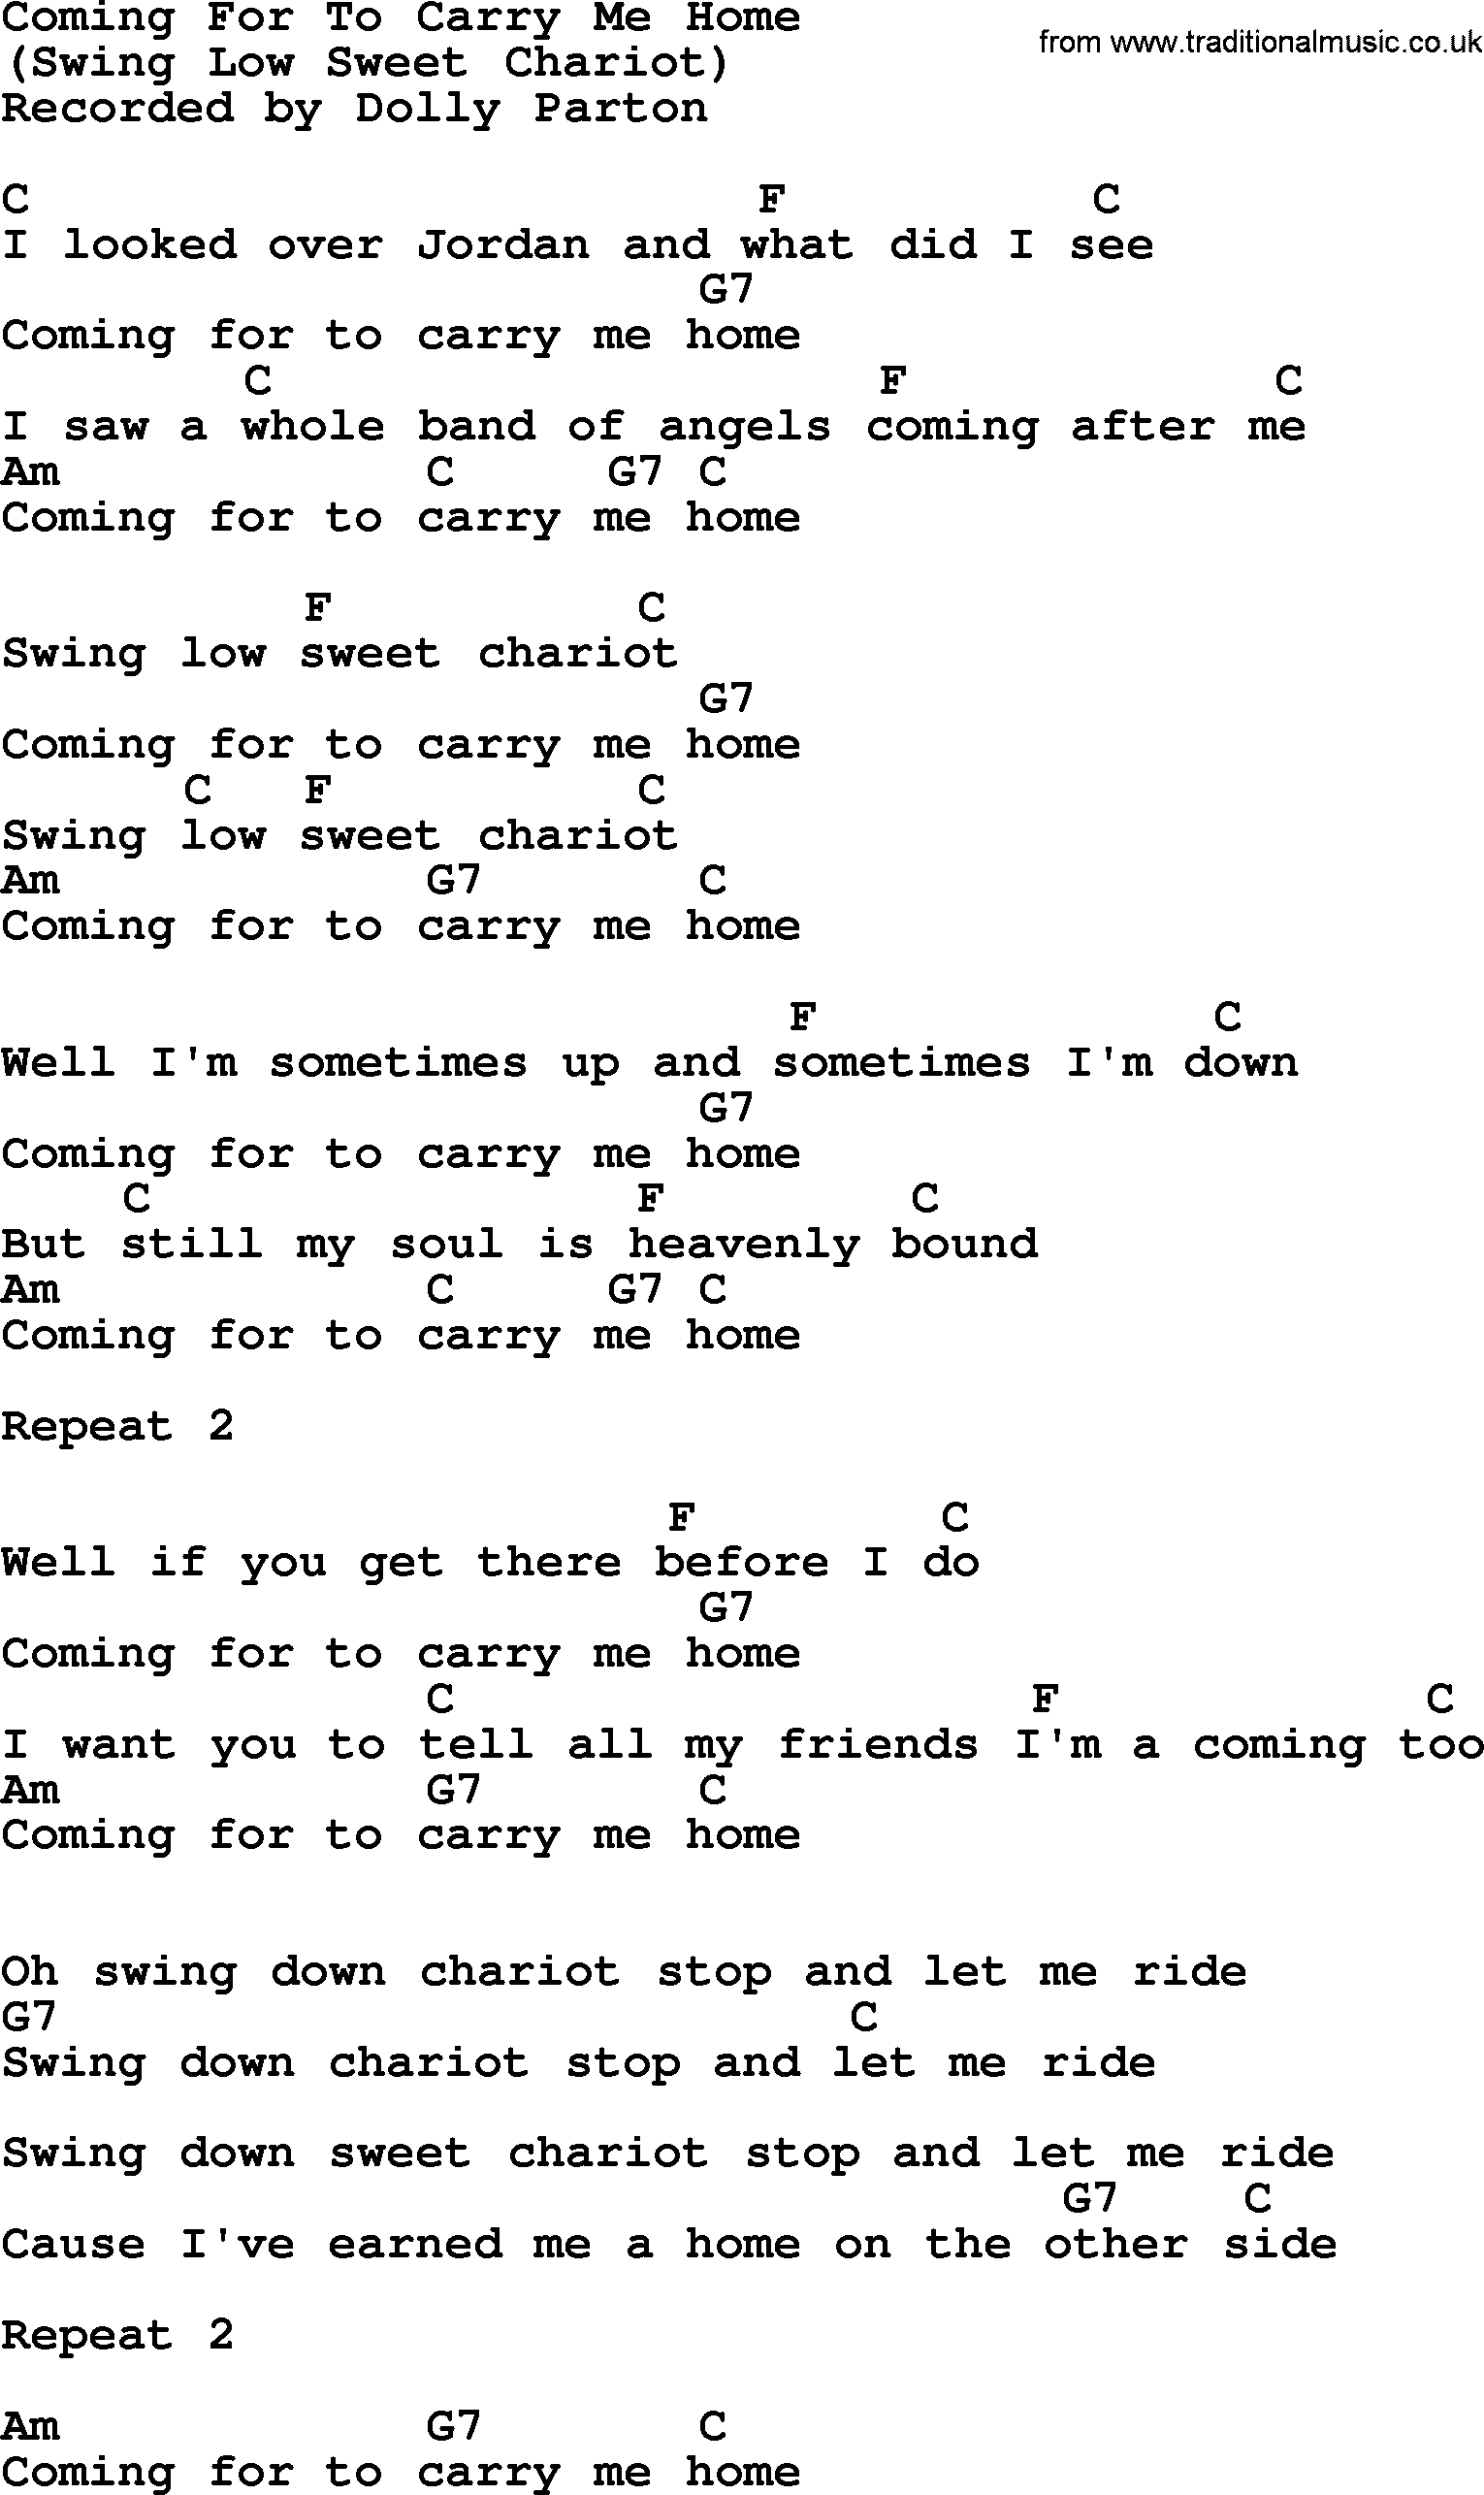 Carry me home song lyrics